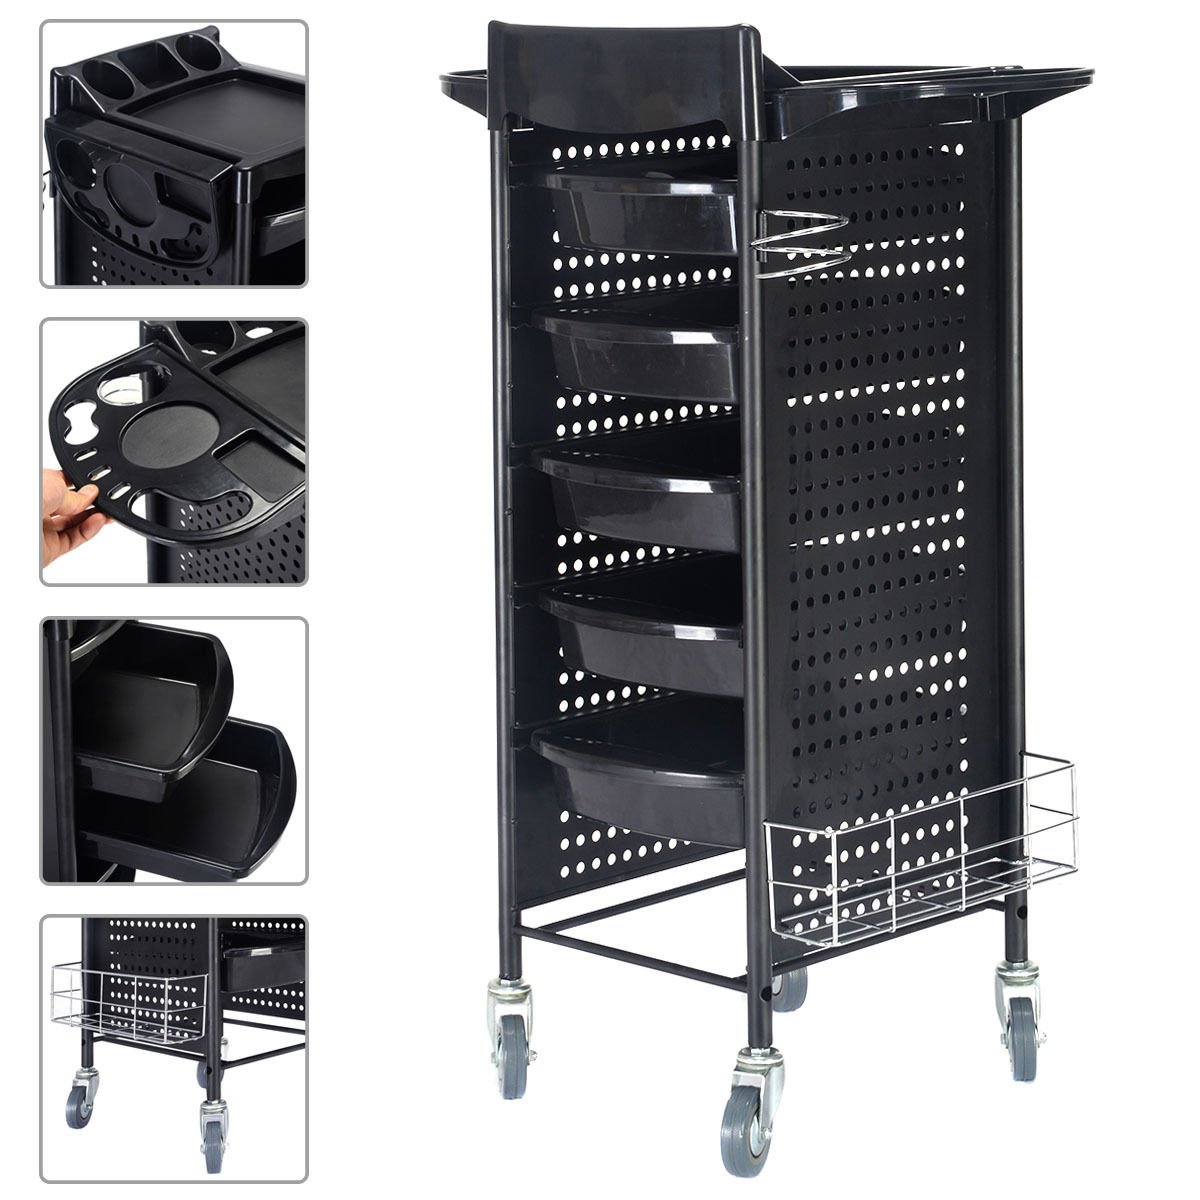 40'' Beauty Salon Spa Styling Station Trolley Equipment Rolling Storage Tray Cart by wang tong shop